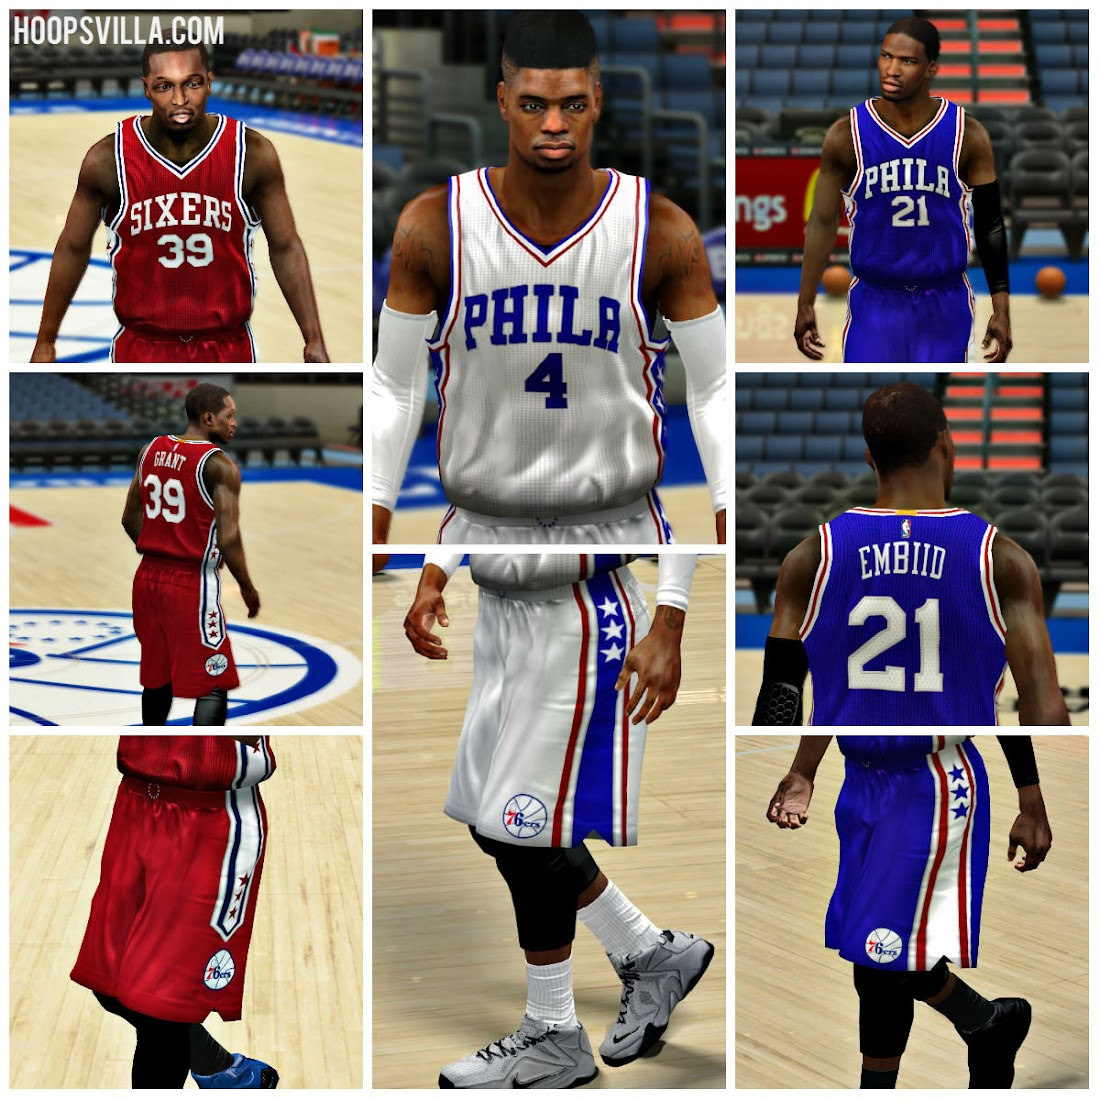 NBA 2k14 Philadelphia 76ers 2016 Jersey Patch - HoopsVilla 0289bfa86